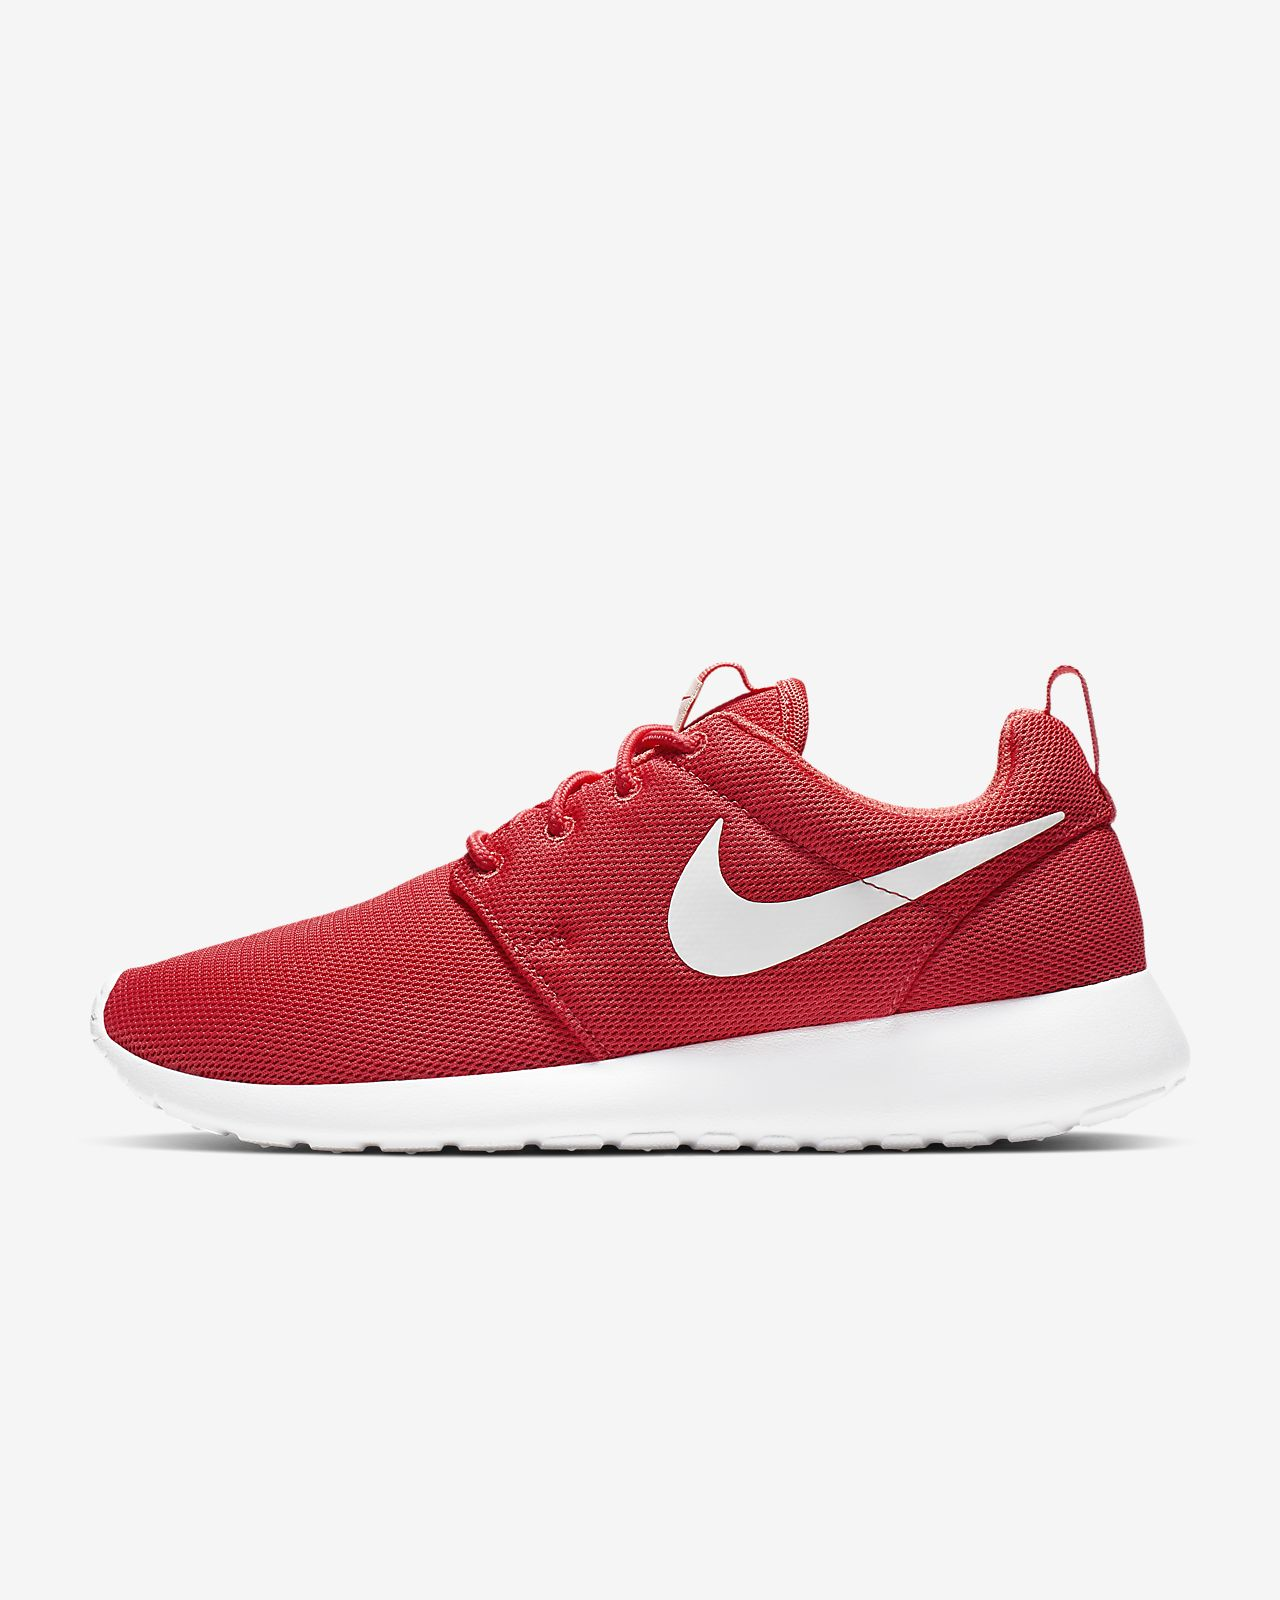 premium selection d2571 d47b0 ... Nike Roshe One Women s Shoe